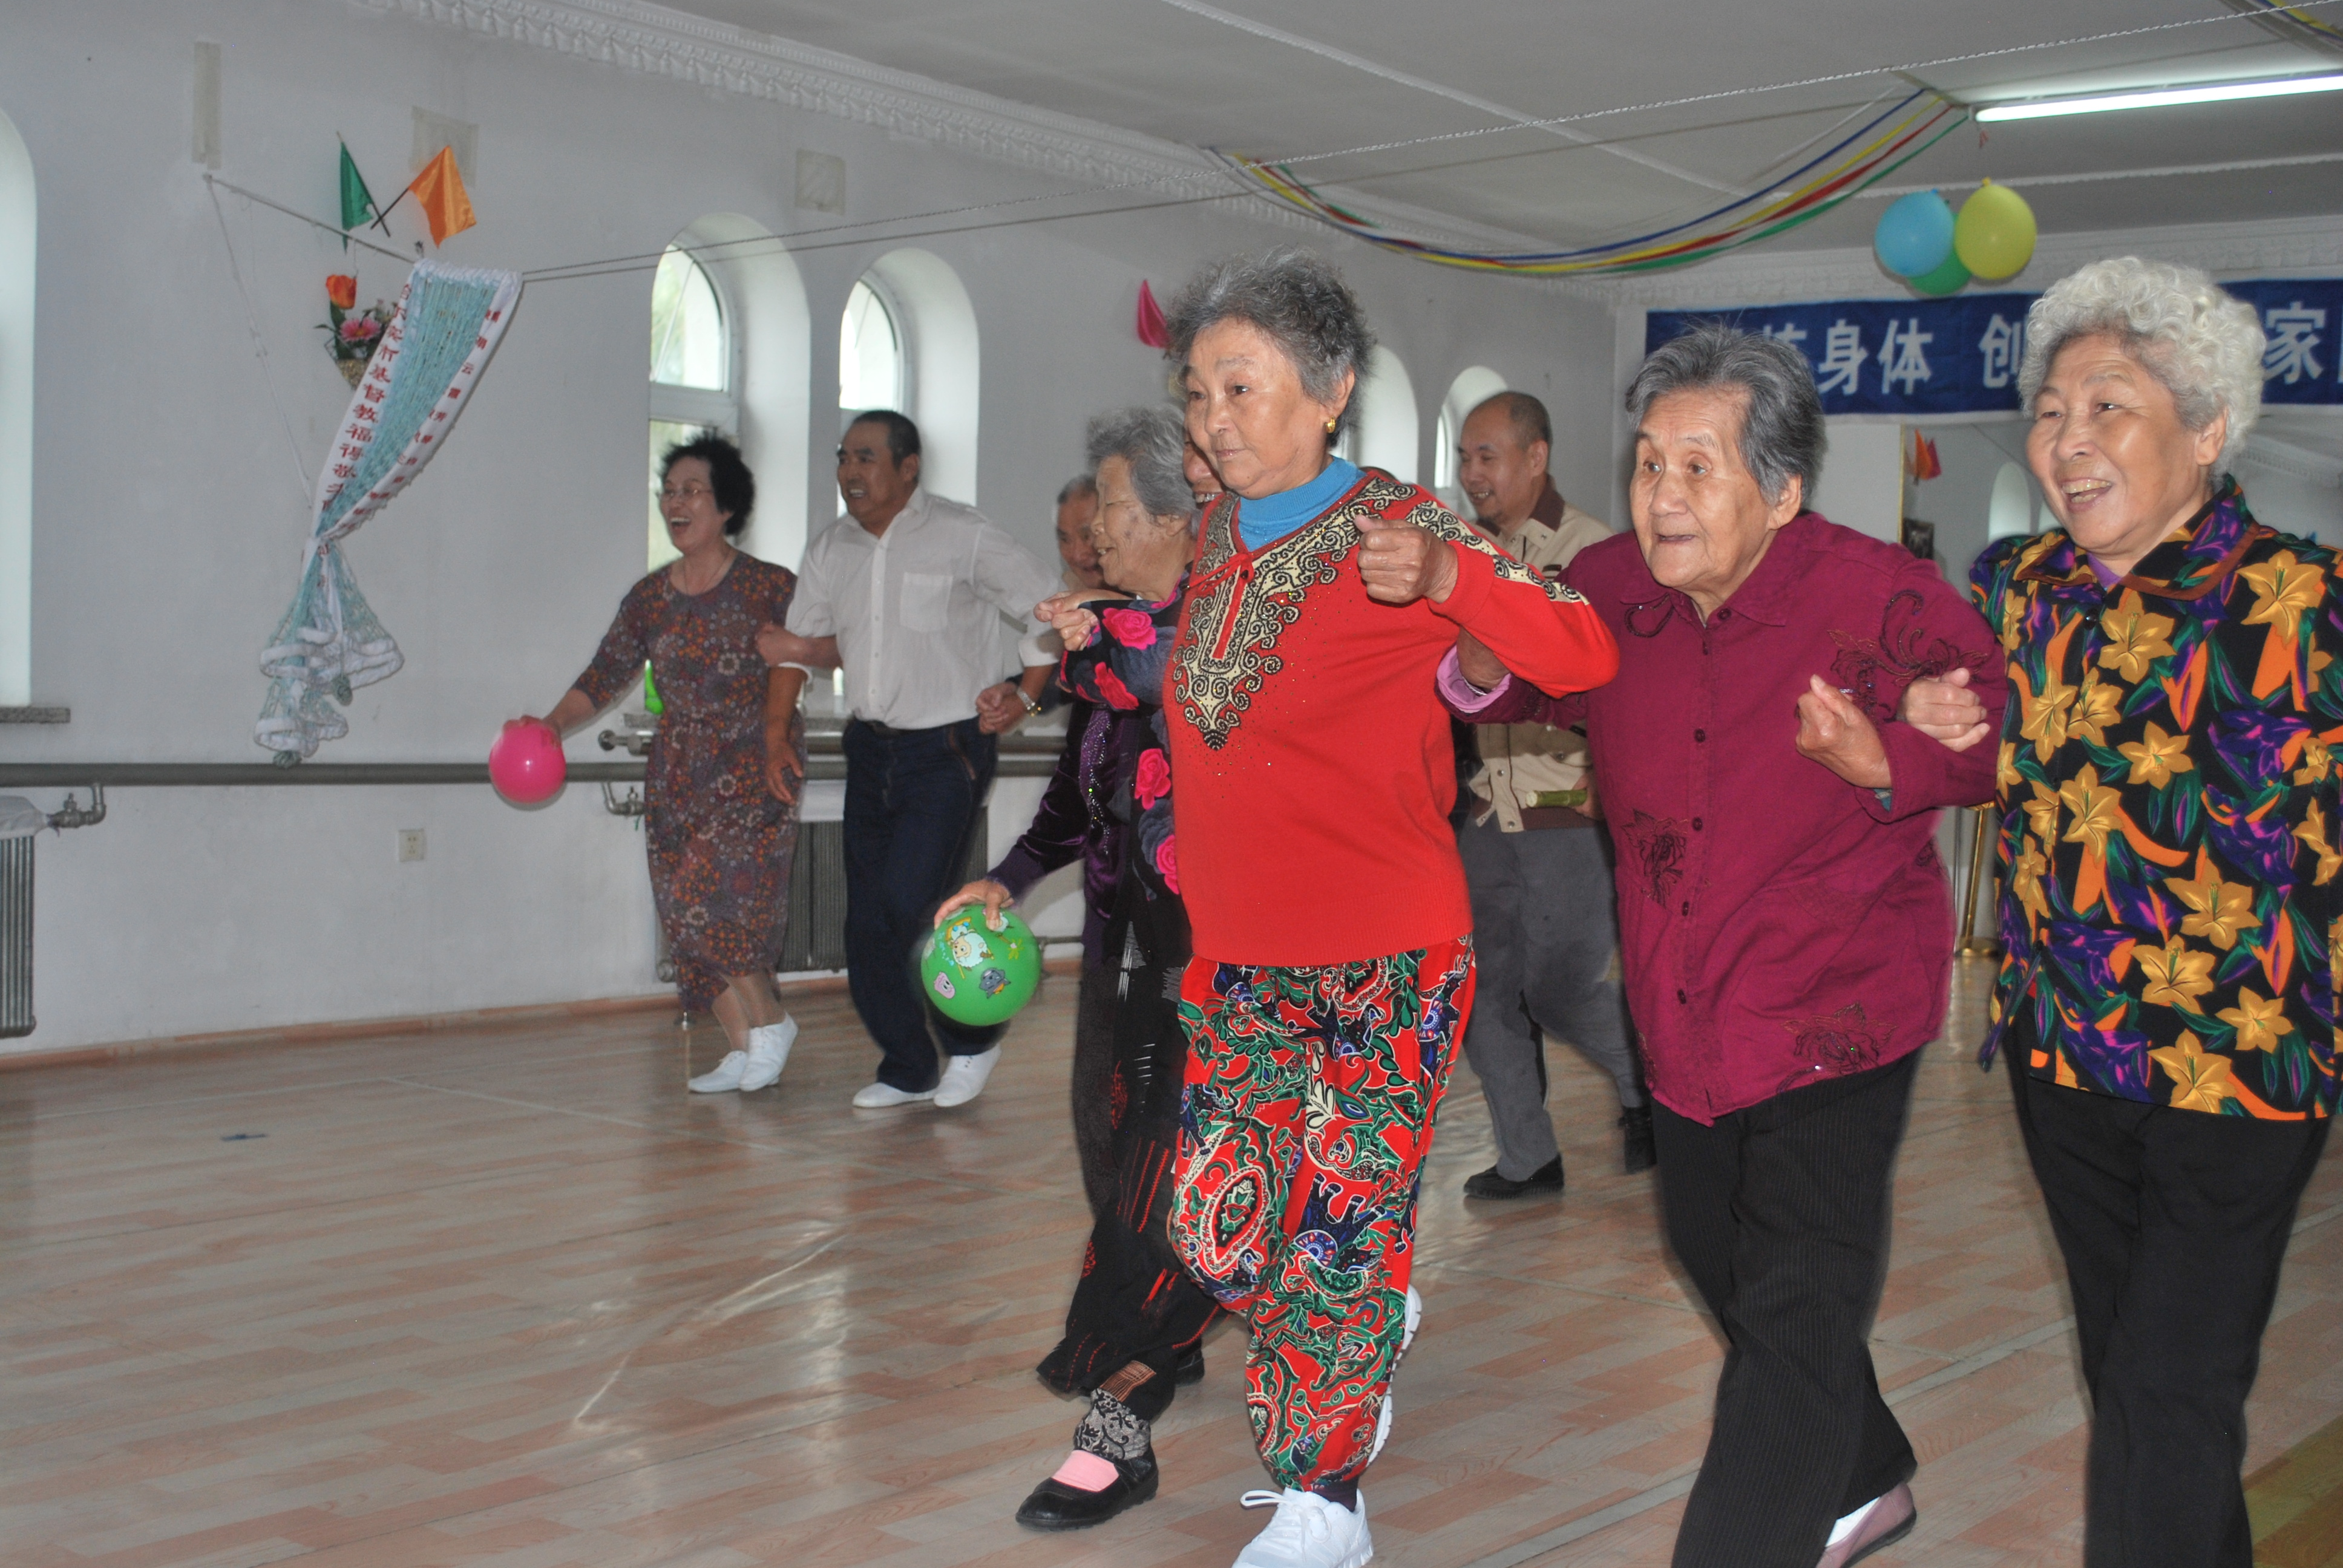 Helping China shape their older person's care